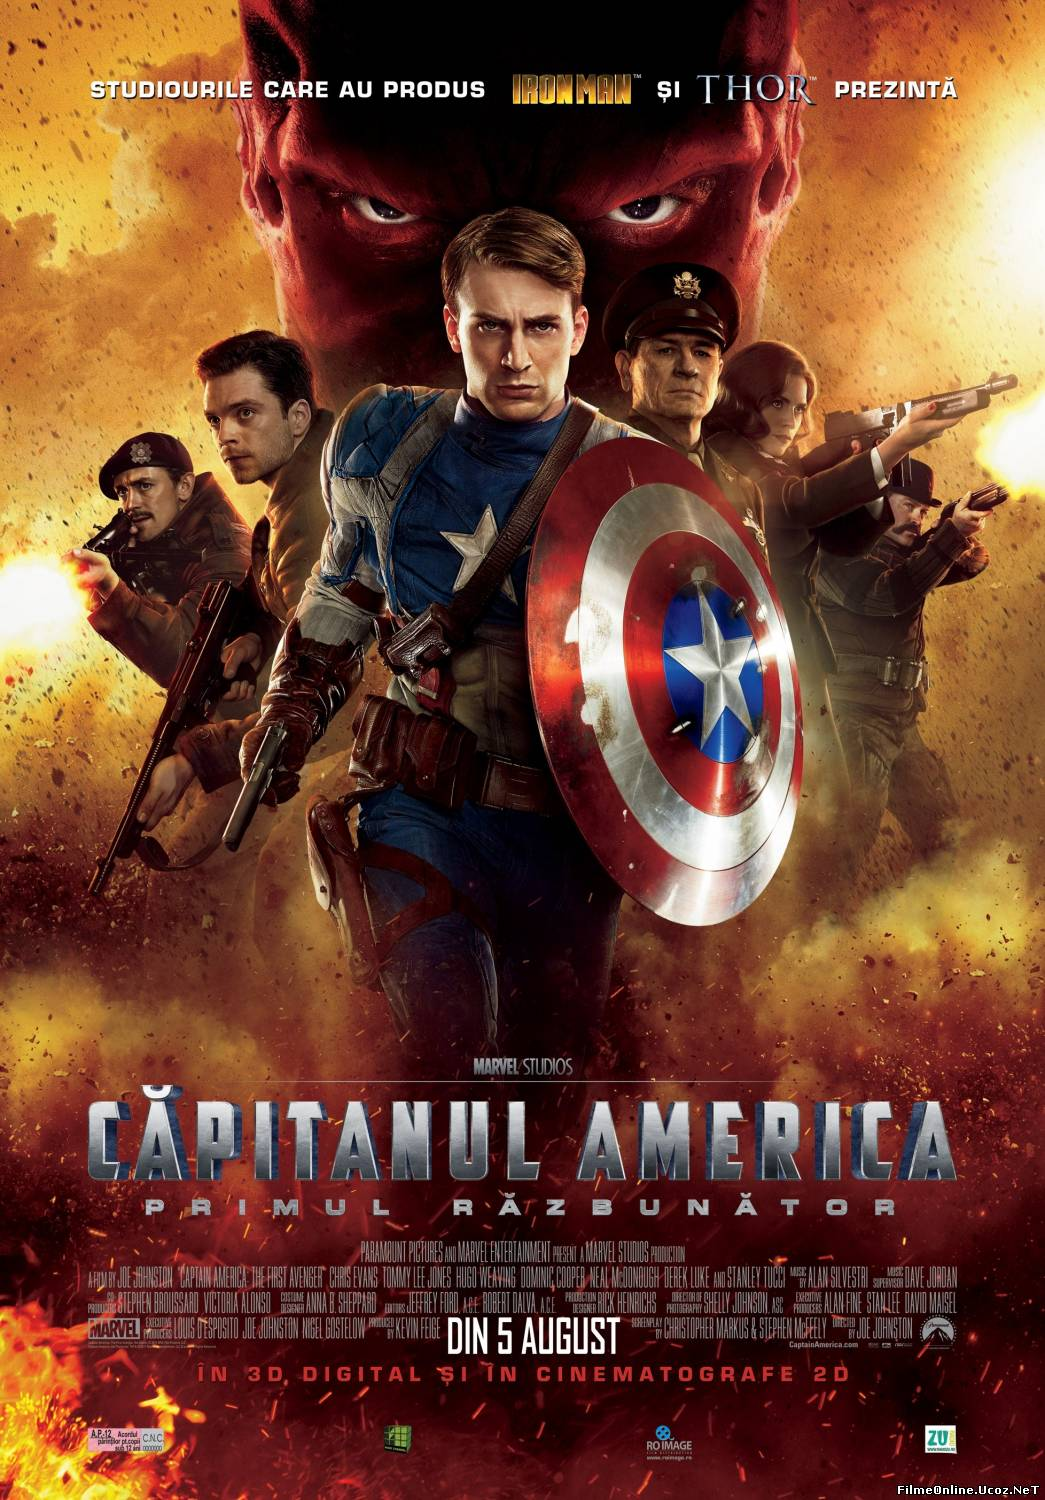 Captain America: The First Avenger – Capitanul America: Primul razbunator (2011)